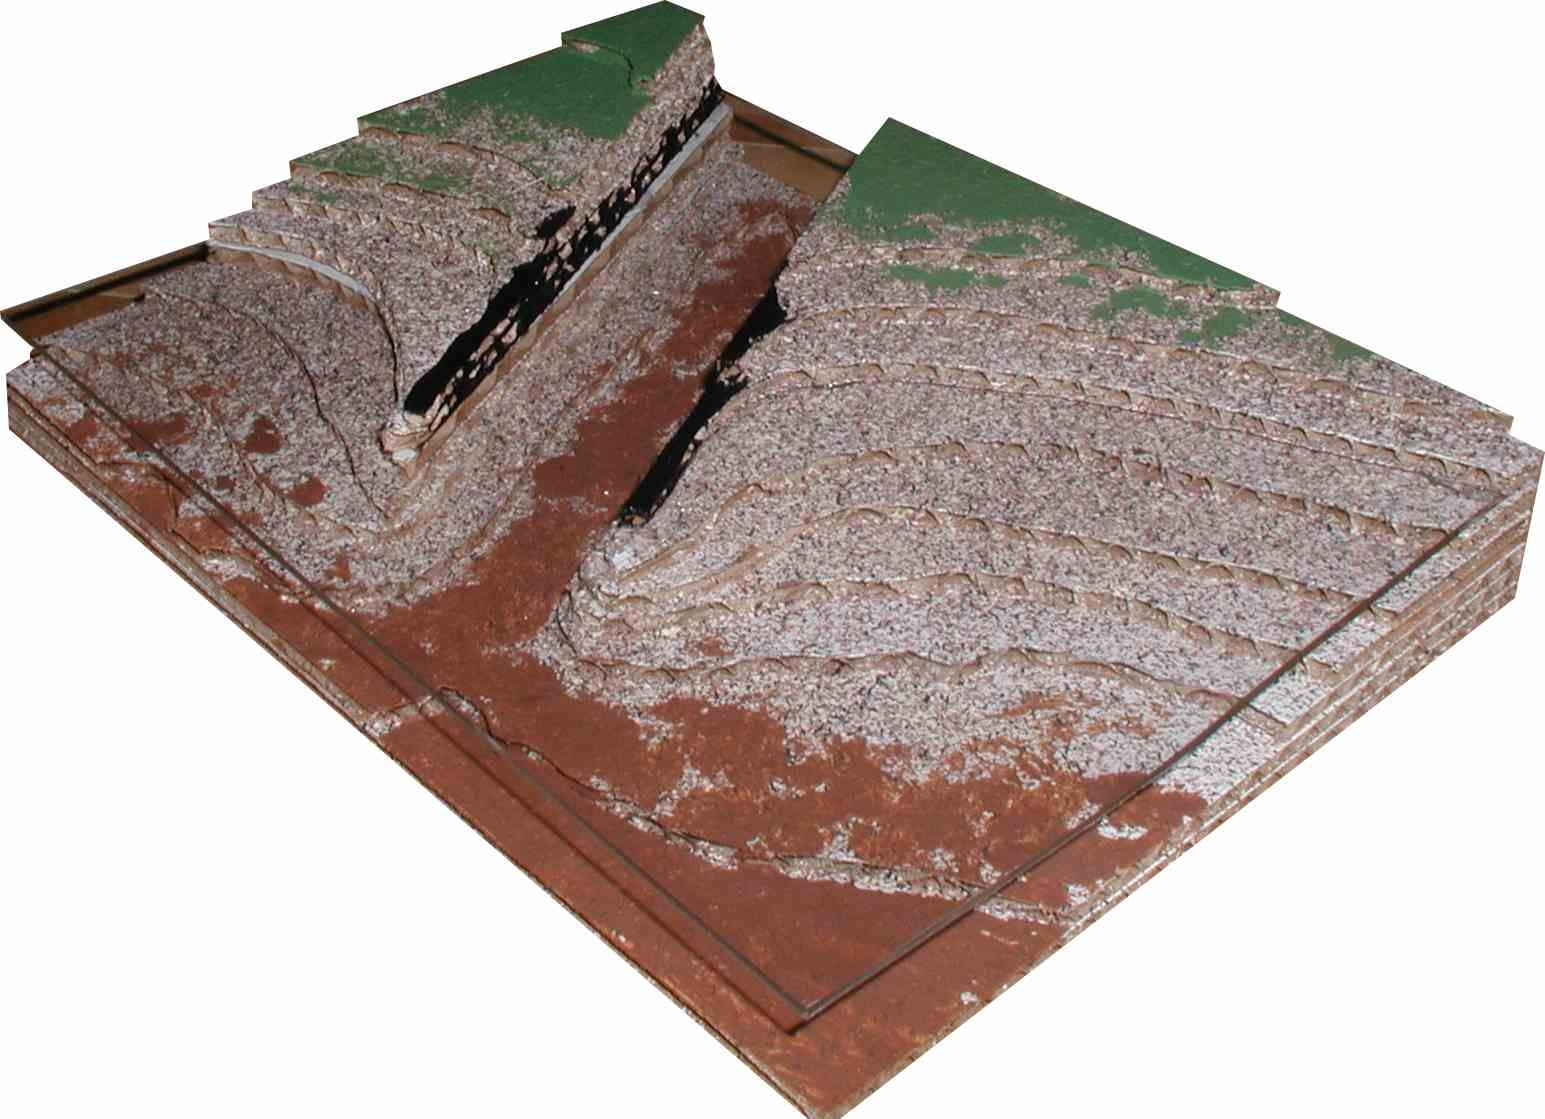 Topographic Land Form Model